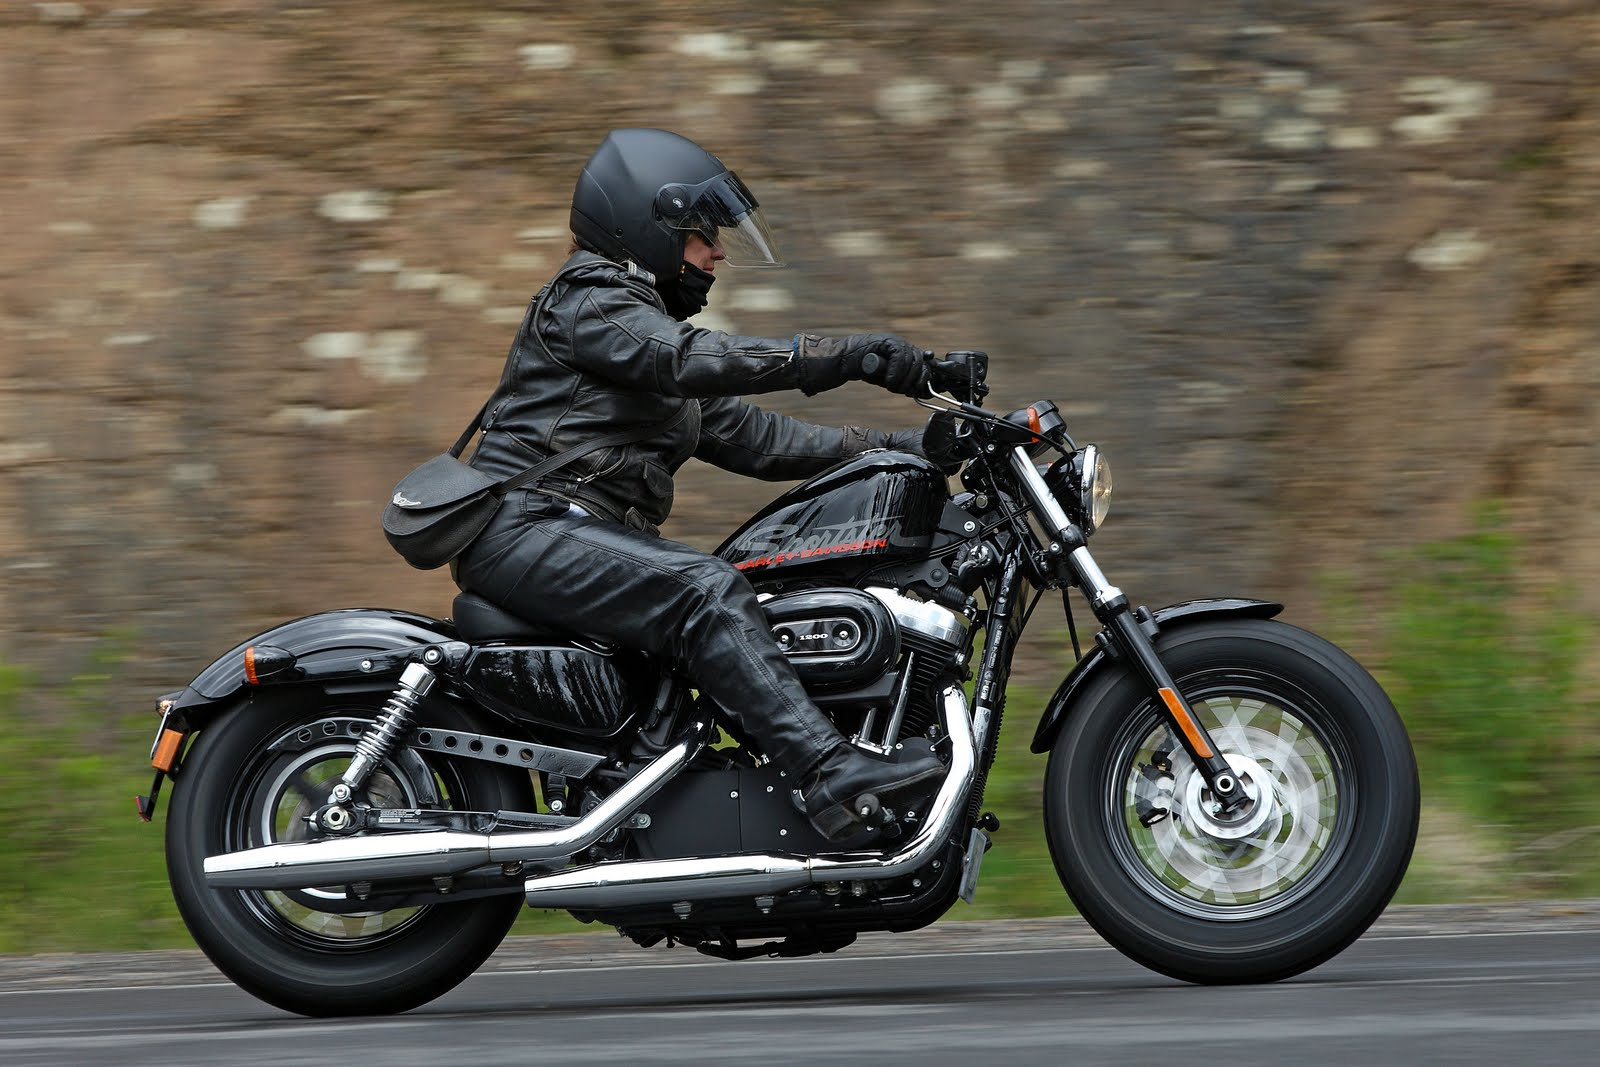 Harley Davidson Xl1200x Forty Eight Image 3